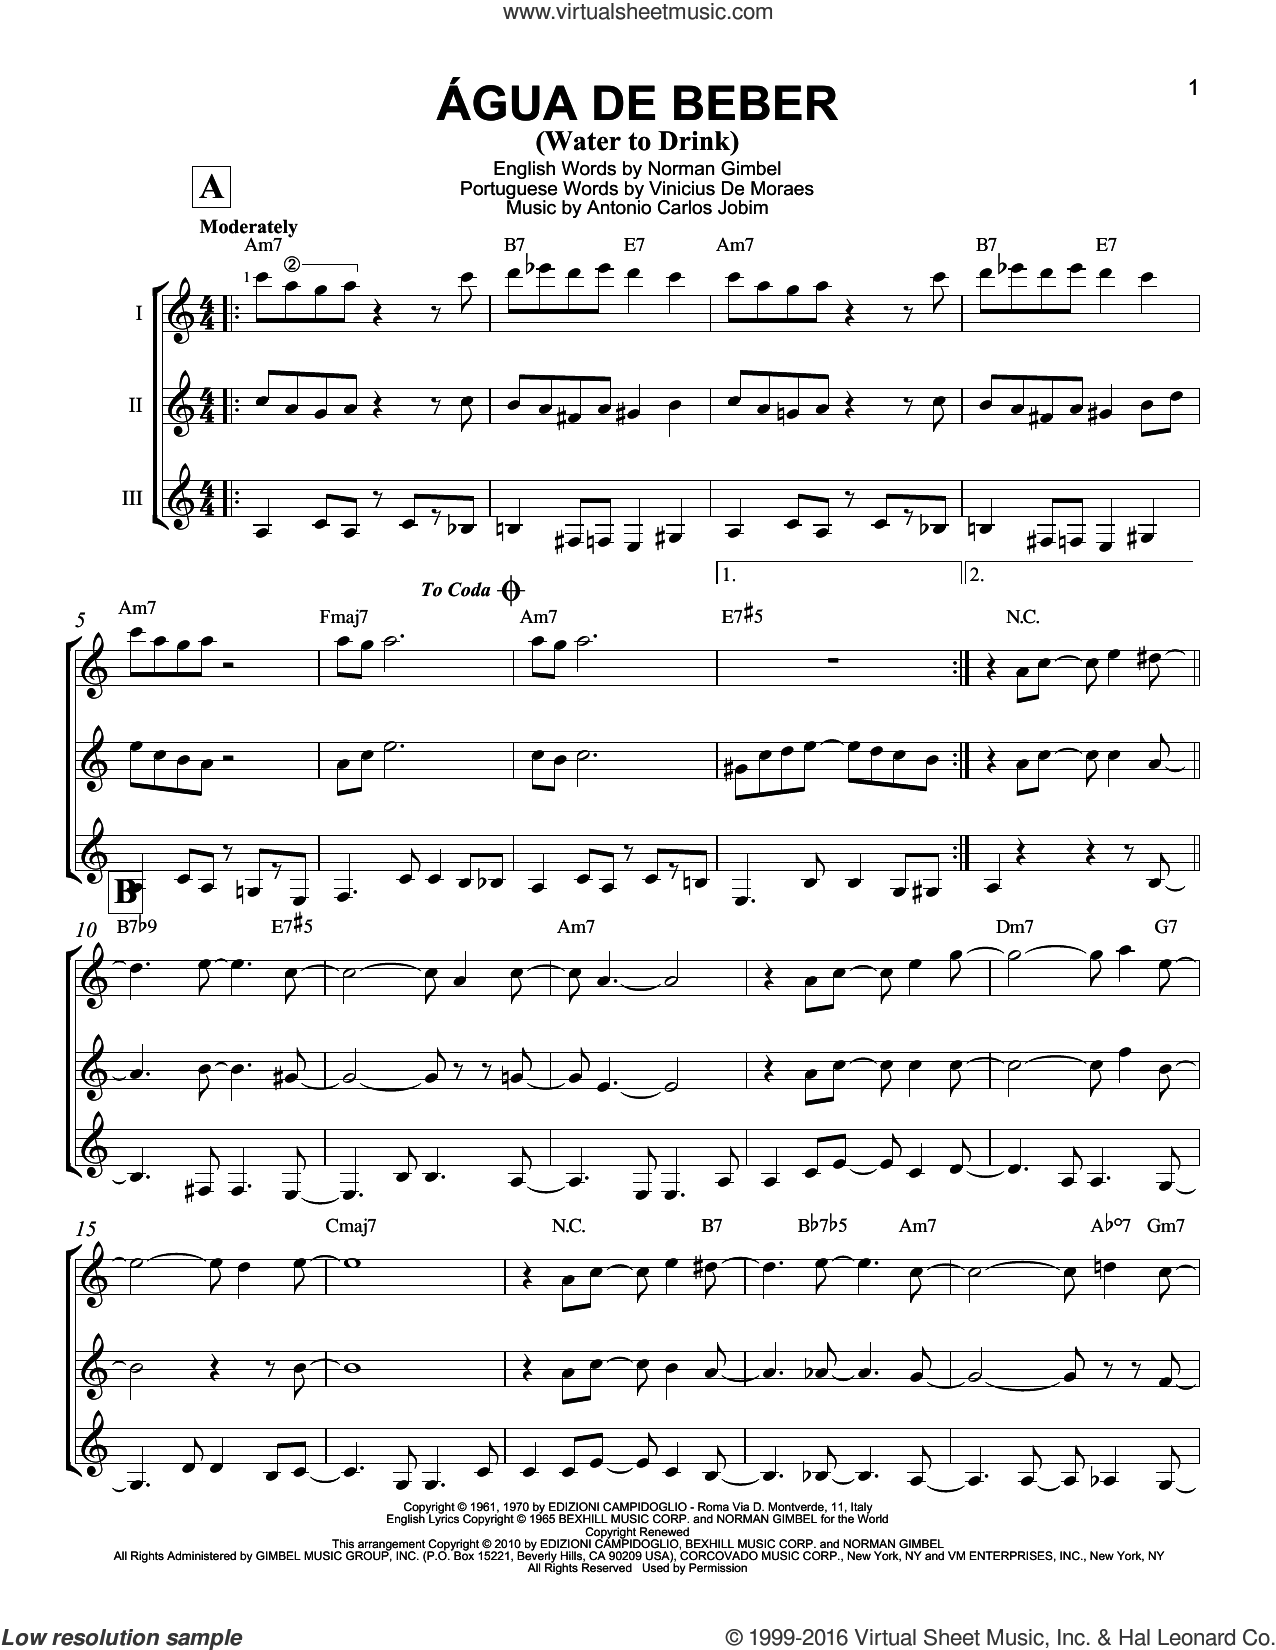 Agua De Beber (Water To Drink) sheet music for guitar ensemble by Antonio Carlos Jobim, Norman Gimbel and Vinicius de Moraes, intermediate skill level